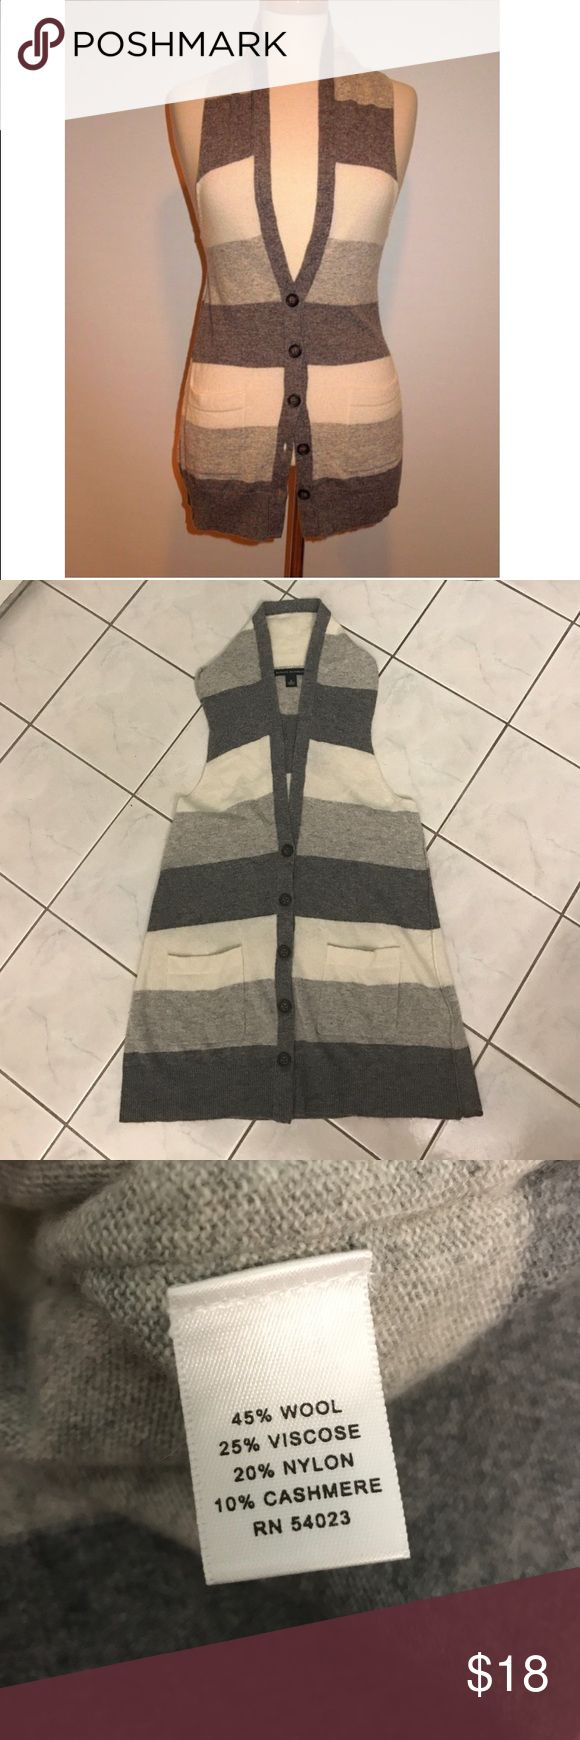 Banana Republic Gray Sweater Stripe Vest Such a cute addition to your fall, winter, or spring wardrobe! Like new condition. Banana Republic Jackets & Coats Vests